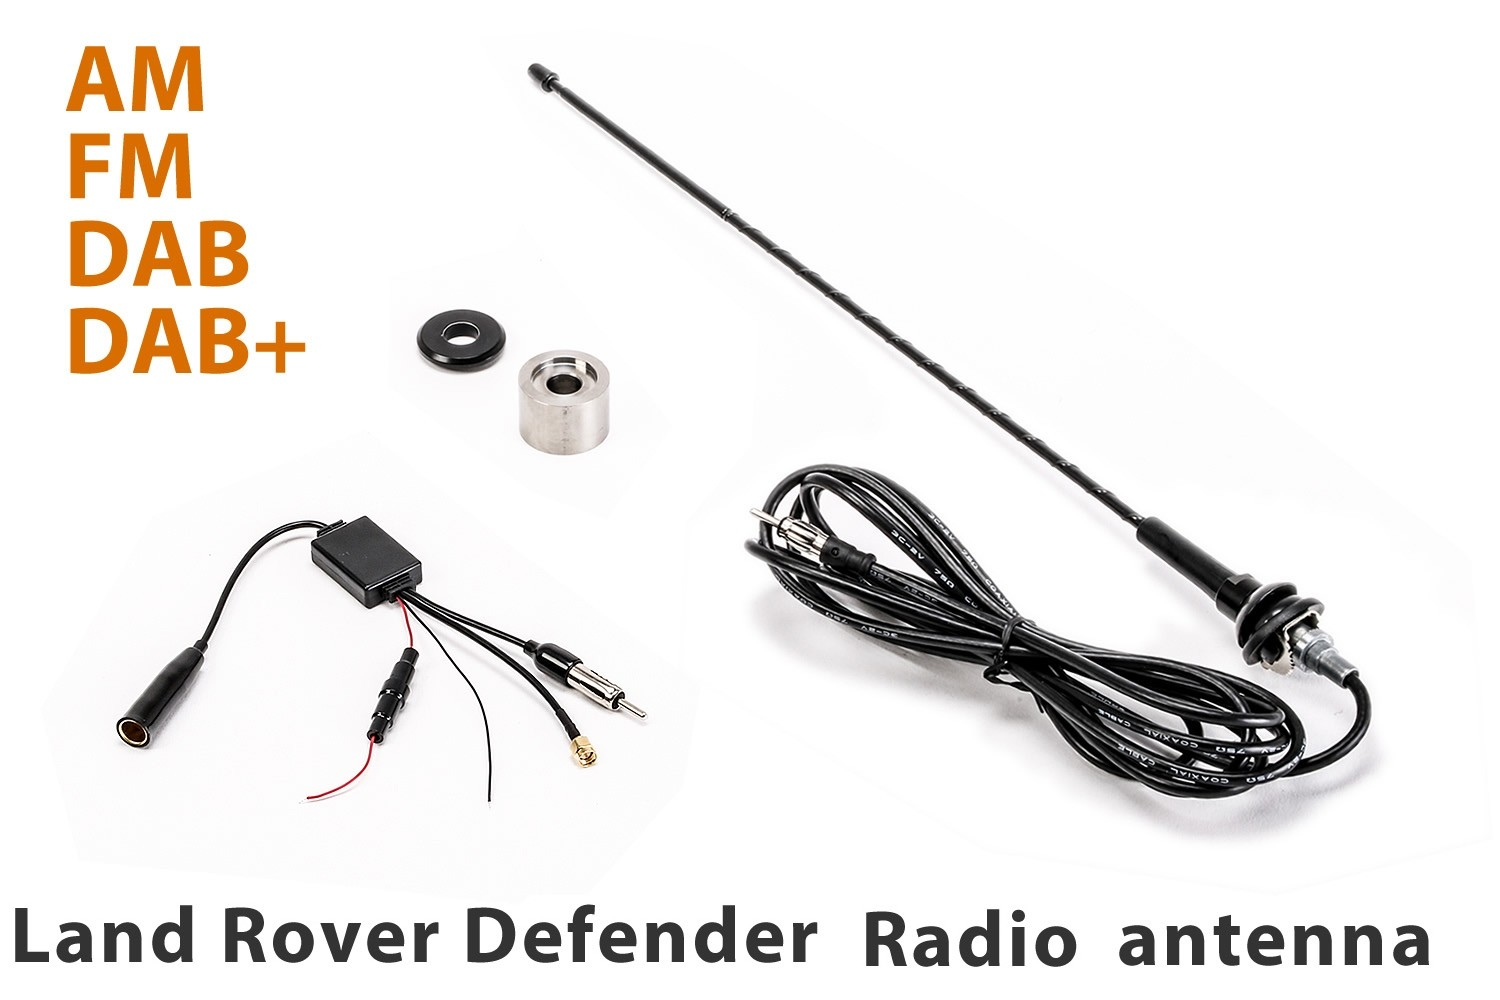 Land Rover Defender Flexible Radio Antenna - AM / FM / DAB / DAB +